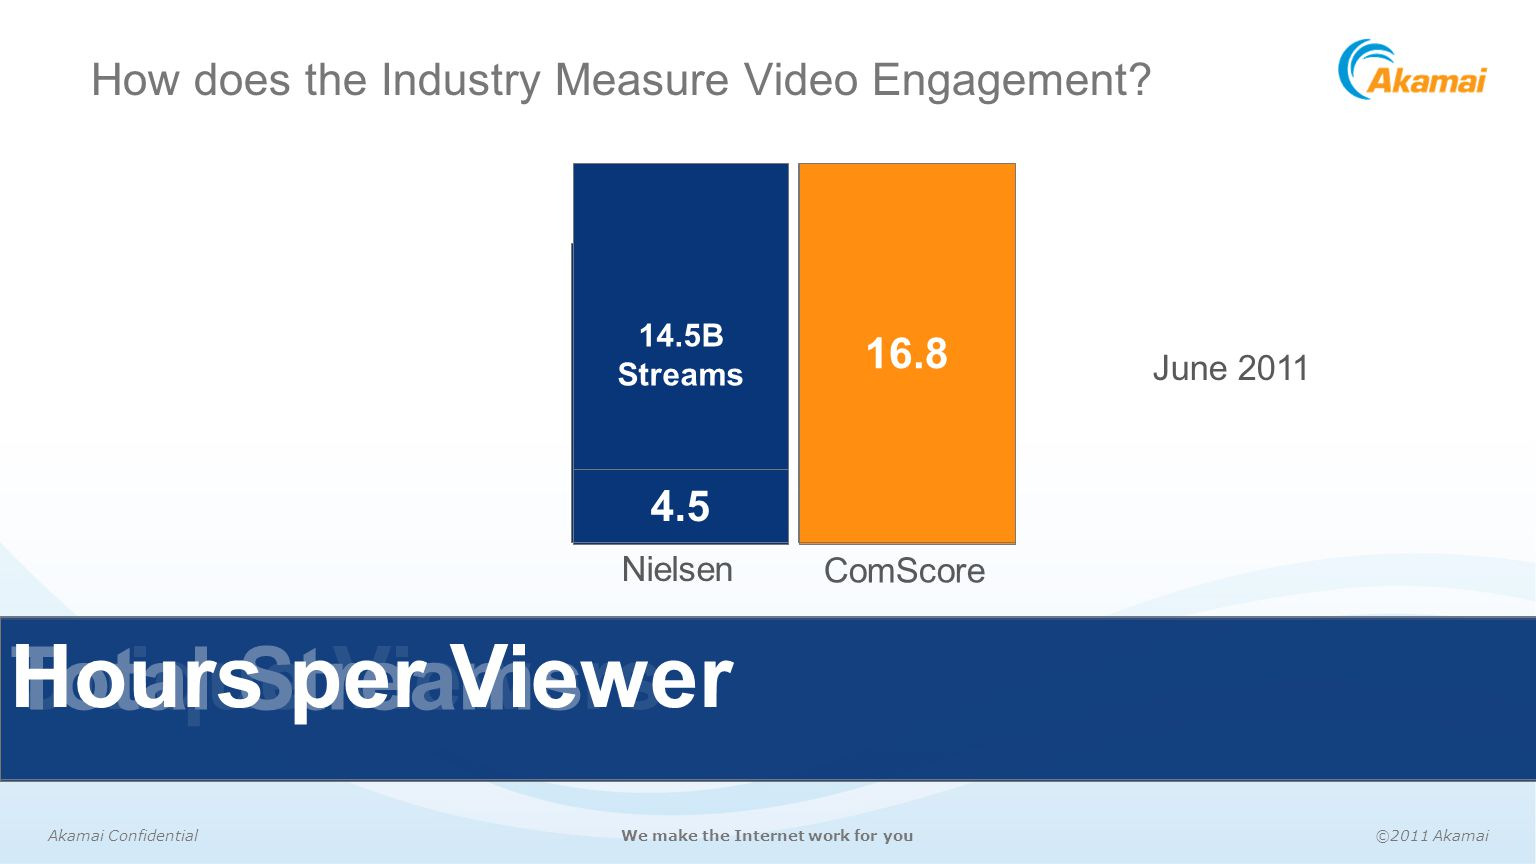 How does the Industry Measure Video Engagement